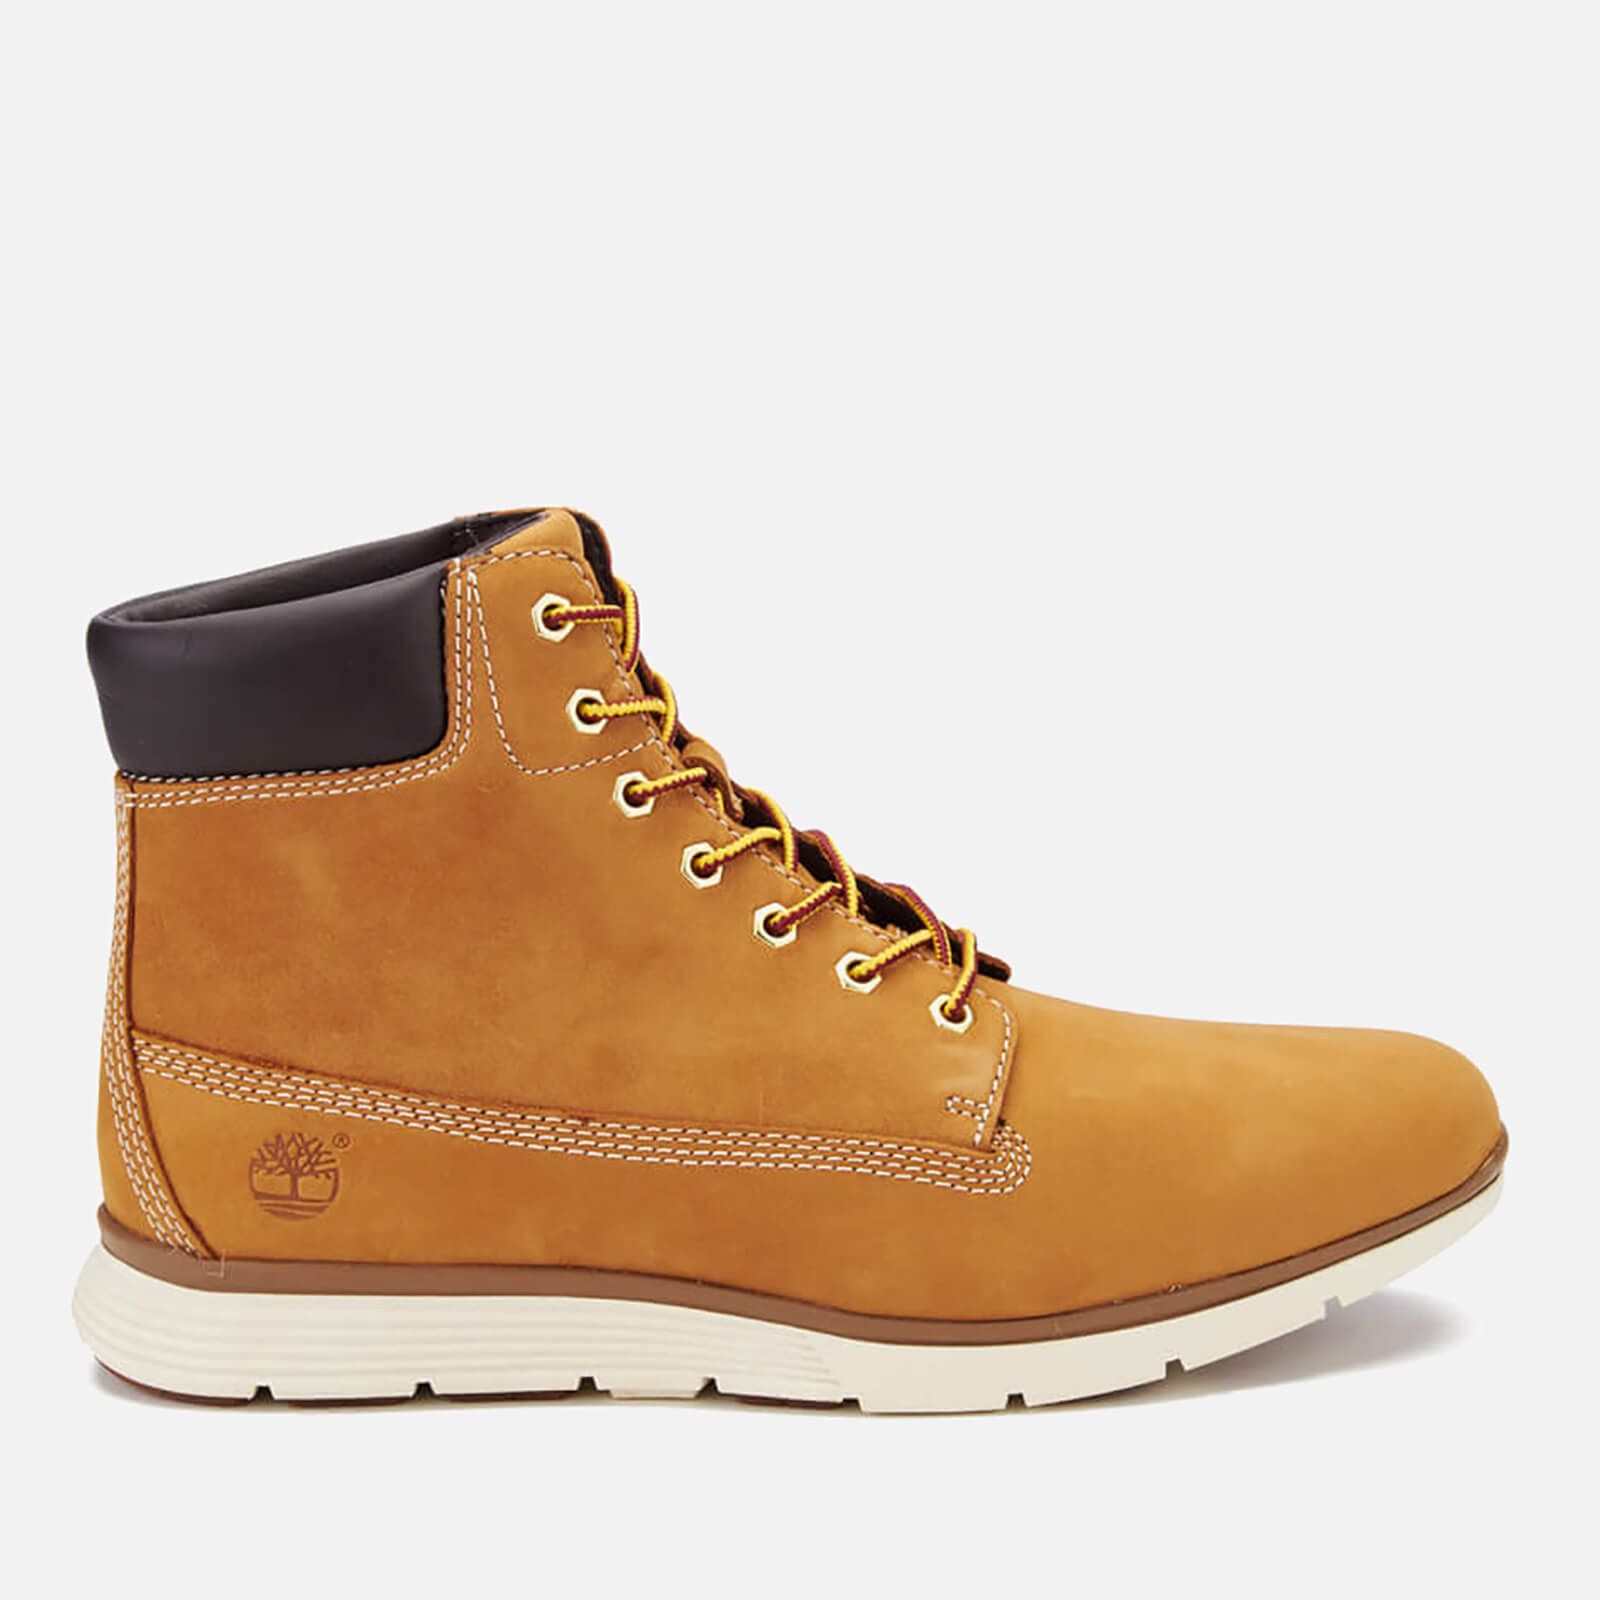 Timberland Men's Killington 6 Inch Boots Wheat Nubuck